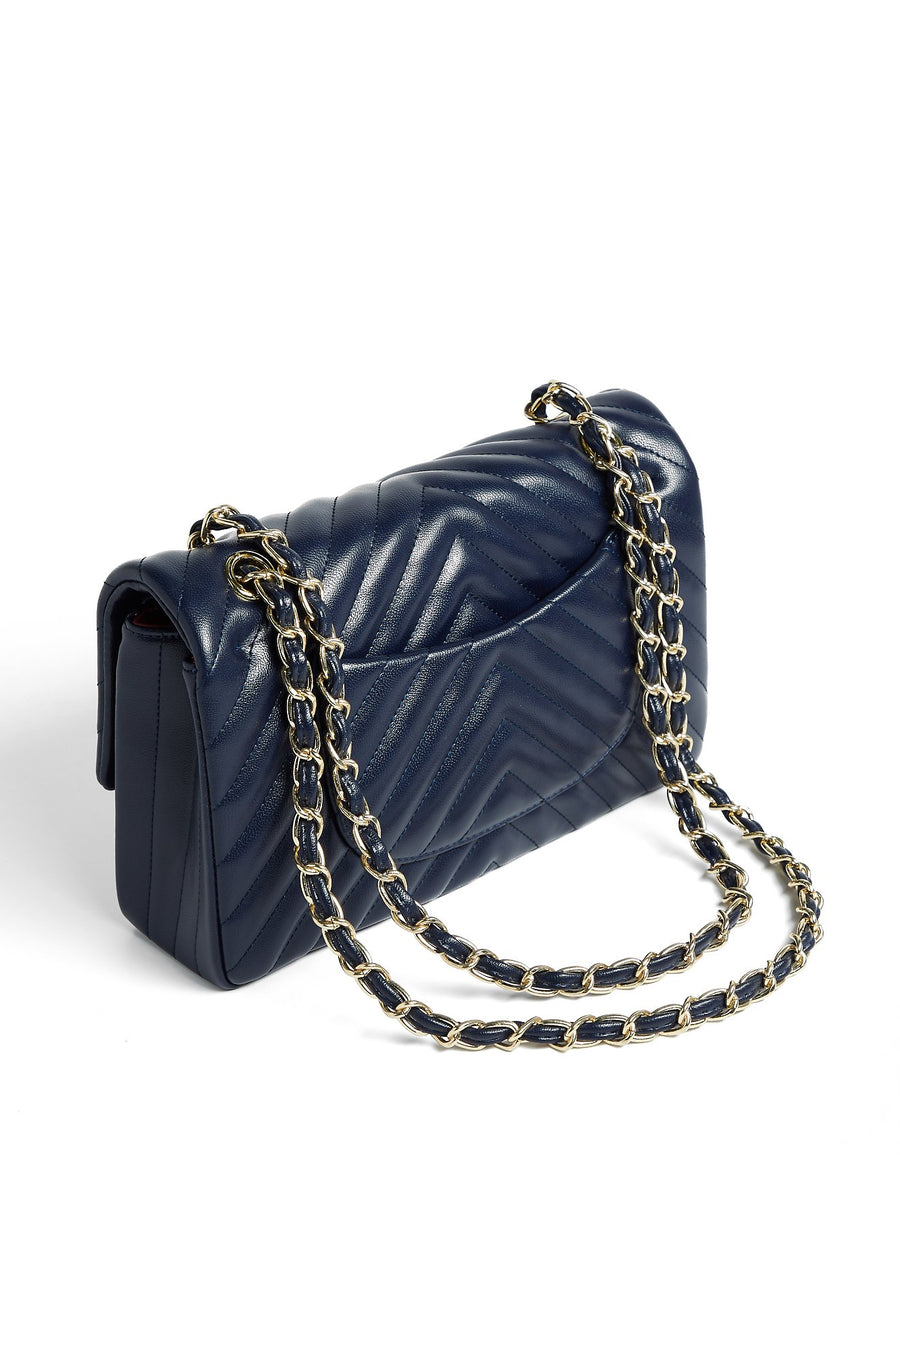 Move In My Direction Handbag (Navy)